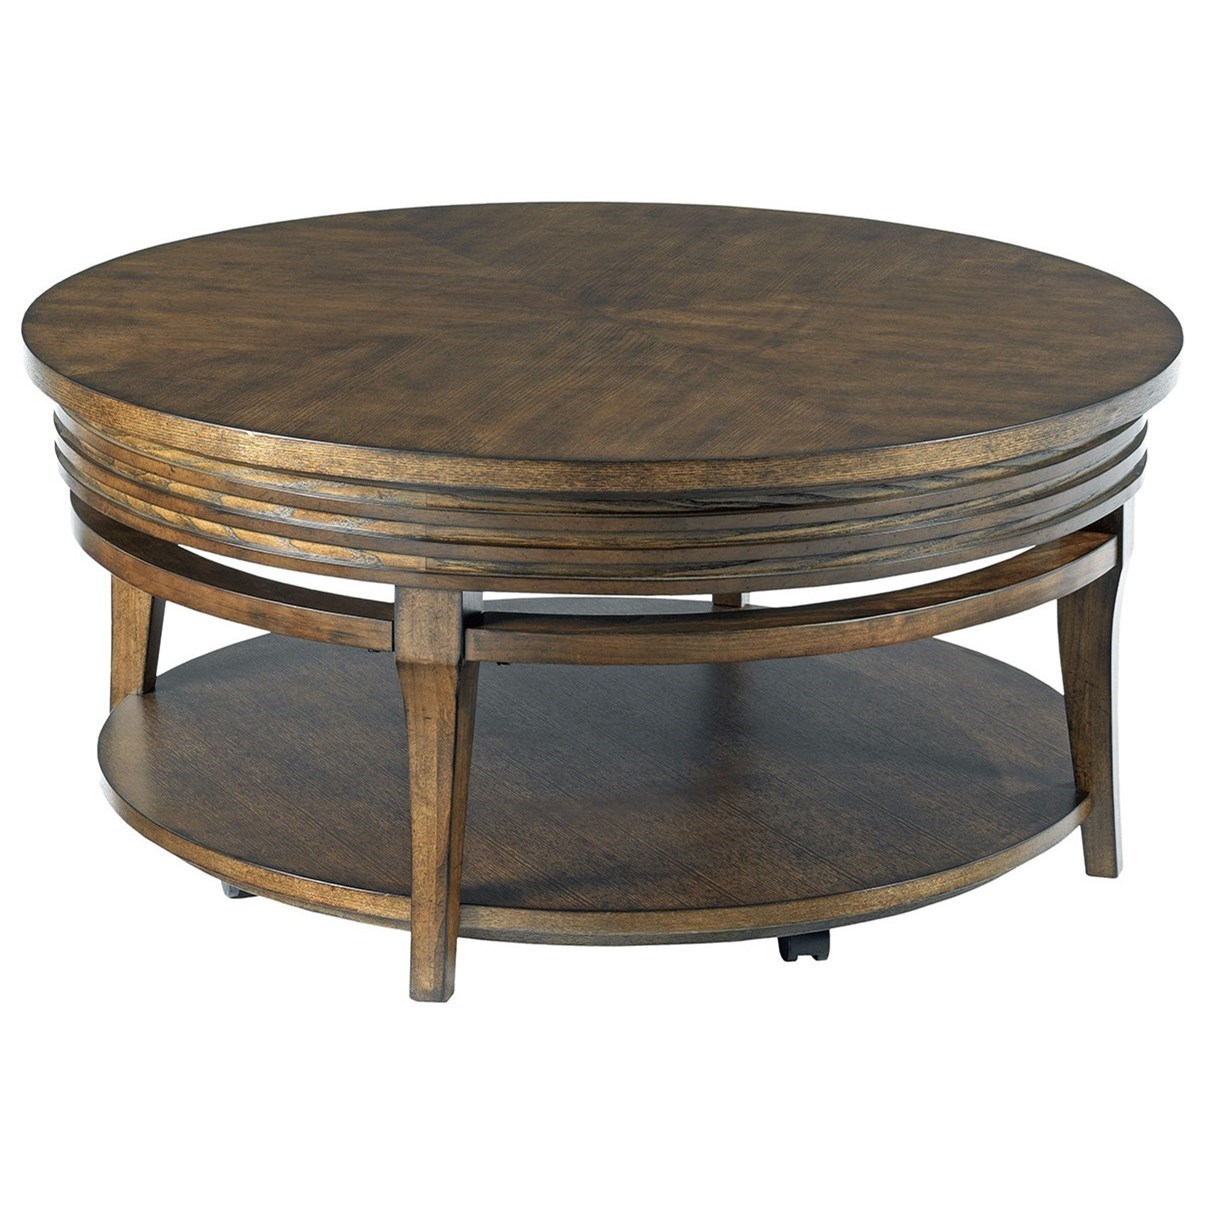 Hammary Groovy Round Cocktail Table - Item Number: 579-913